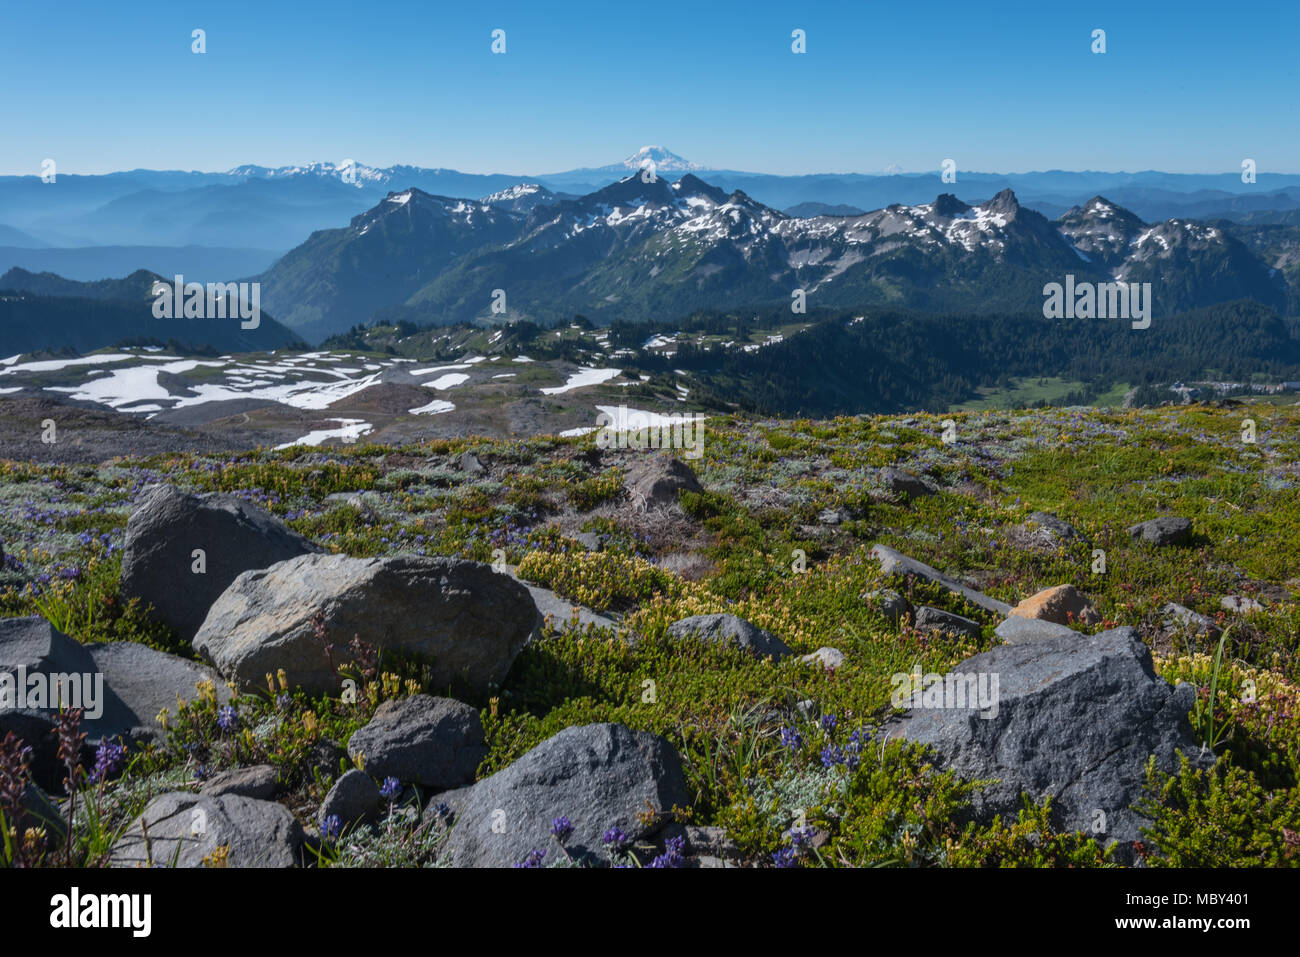 Mt Adams Looms Behind Wildflower Covered Moutains in Washington wilderness - Stock Image